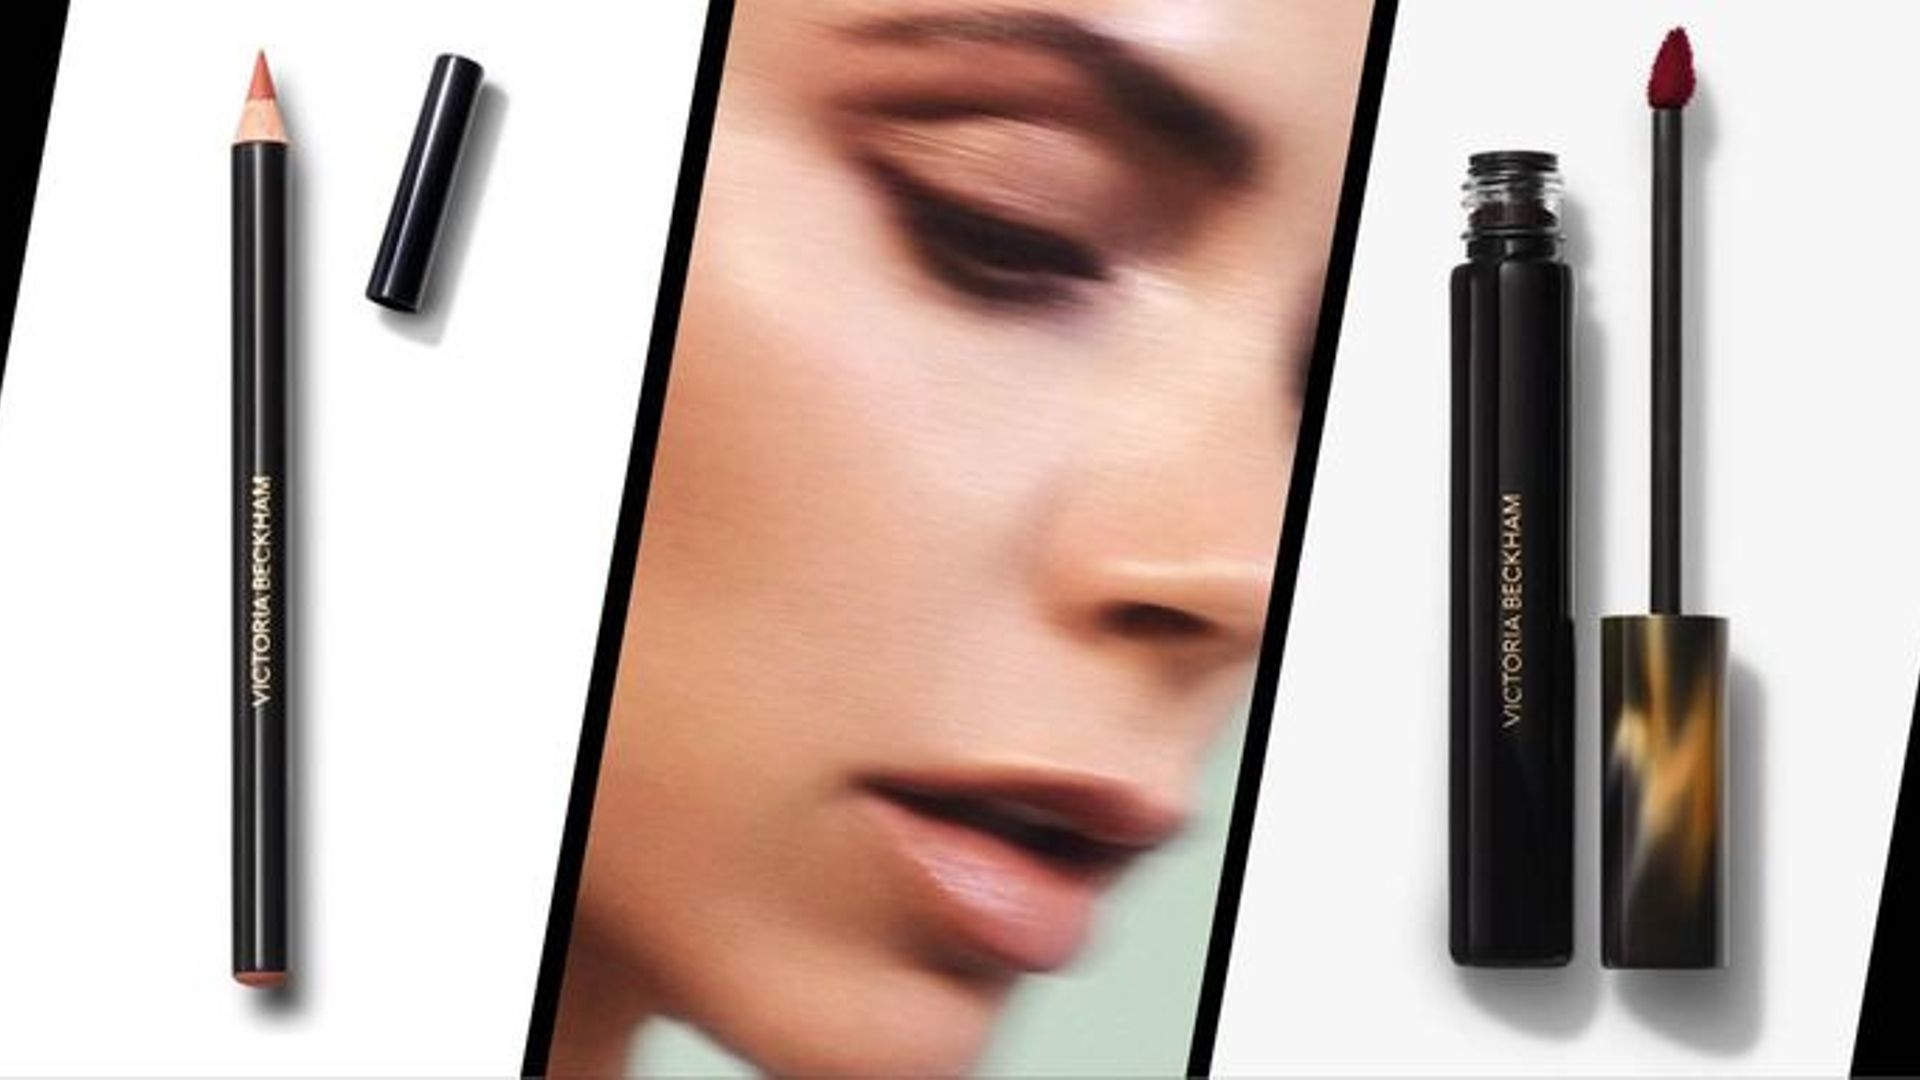 Victoria Beckham Beauty Launches A Lip Collection